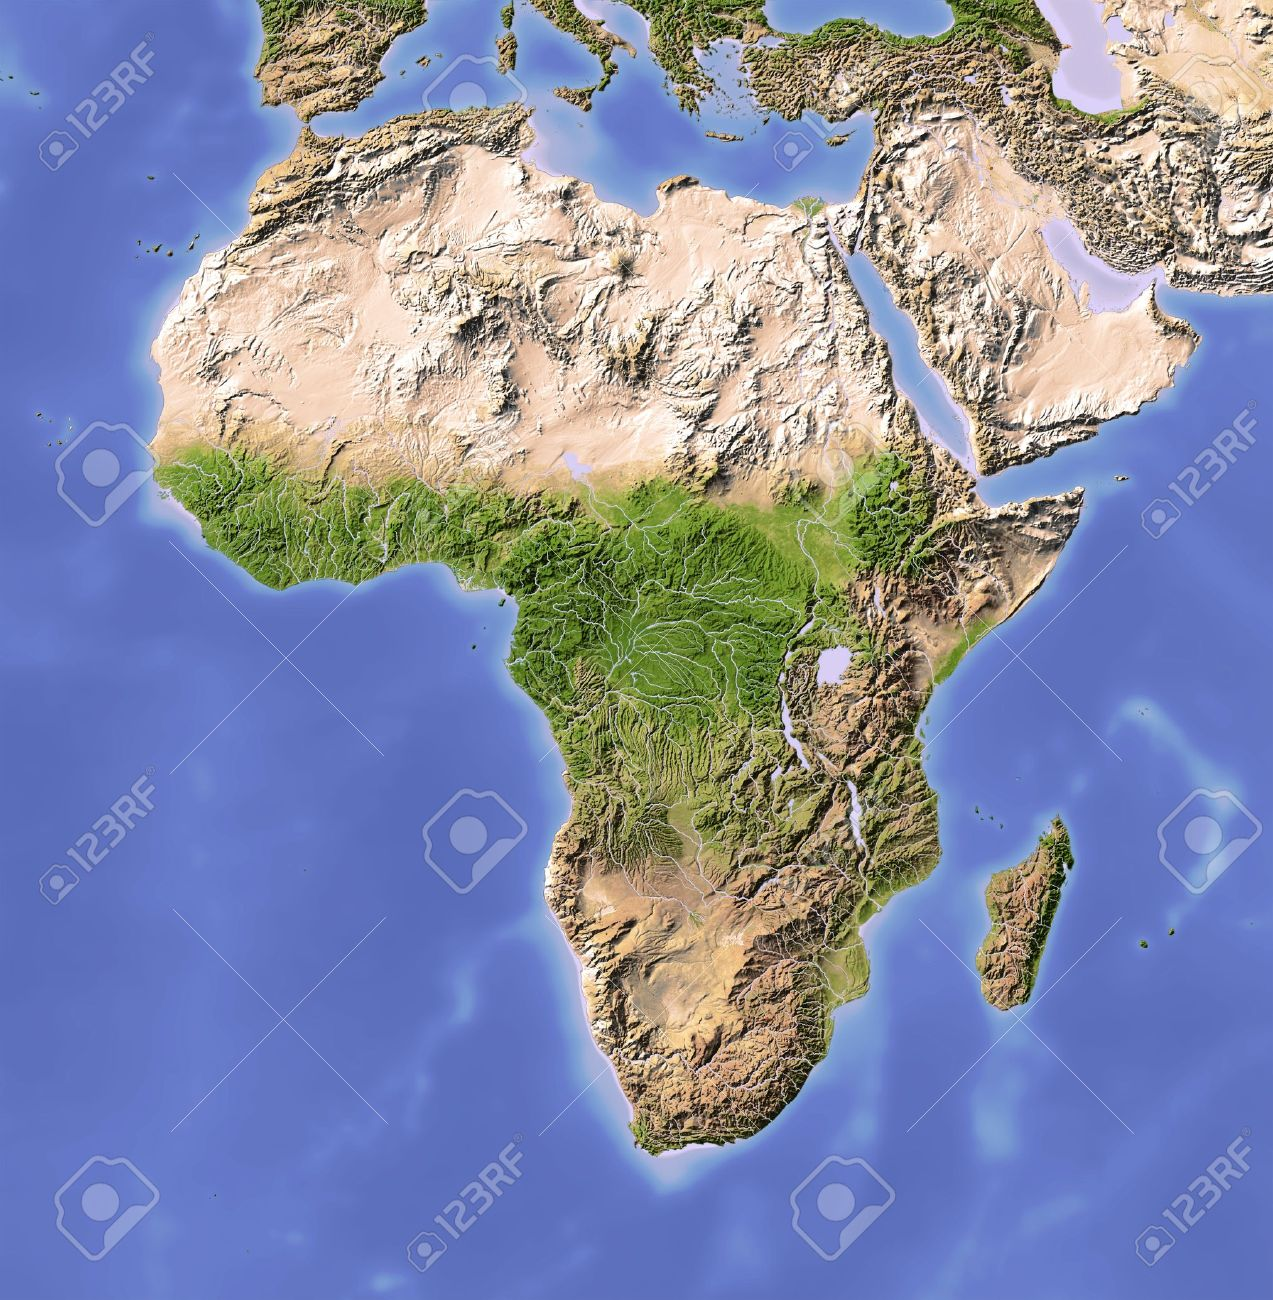 Africa. Shaded relief map. Colored according to vegetation. Projection Mercator